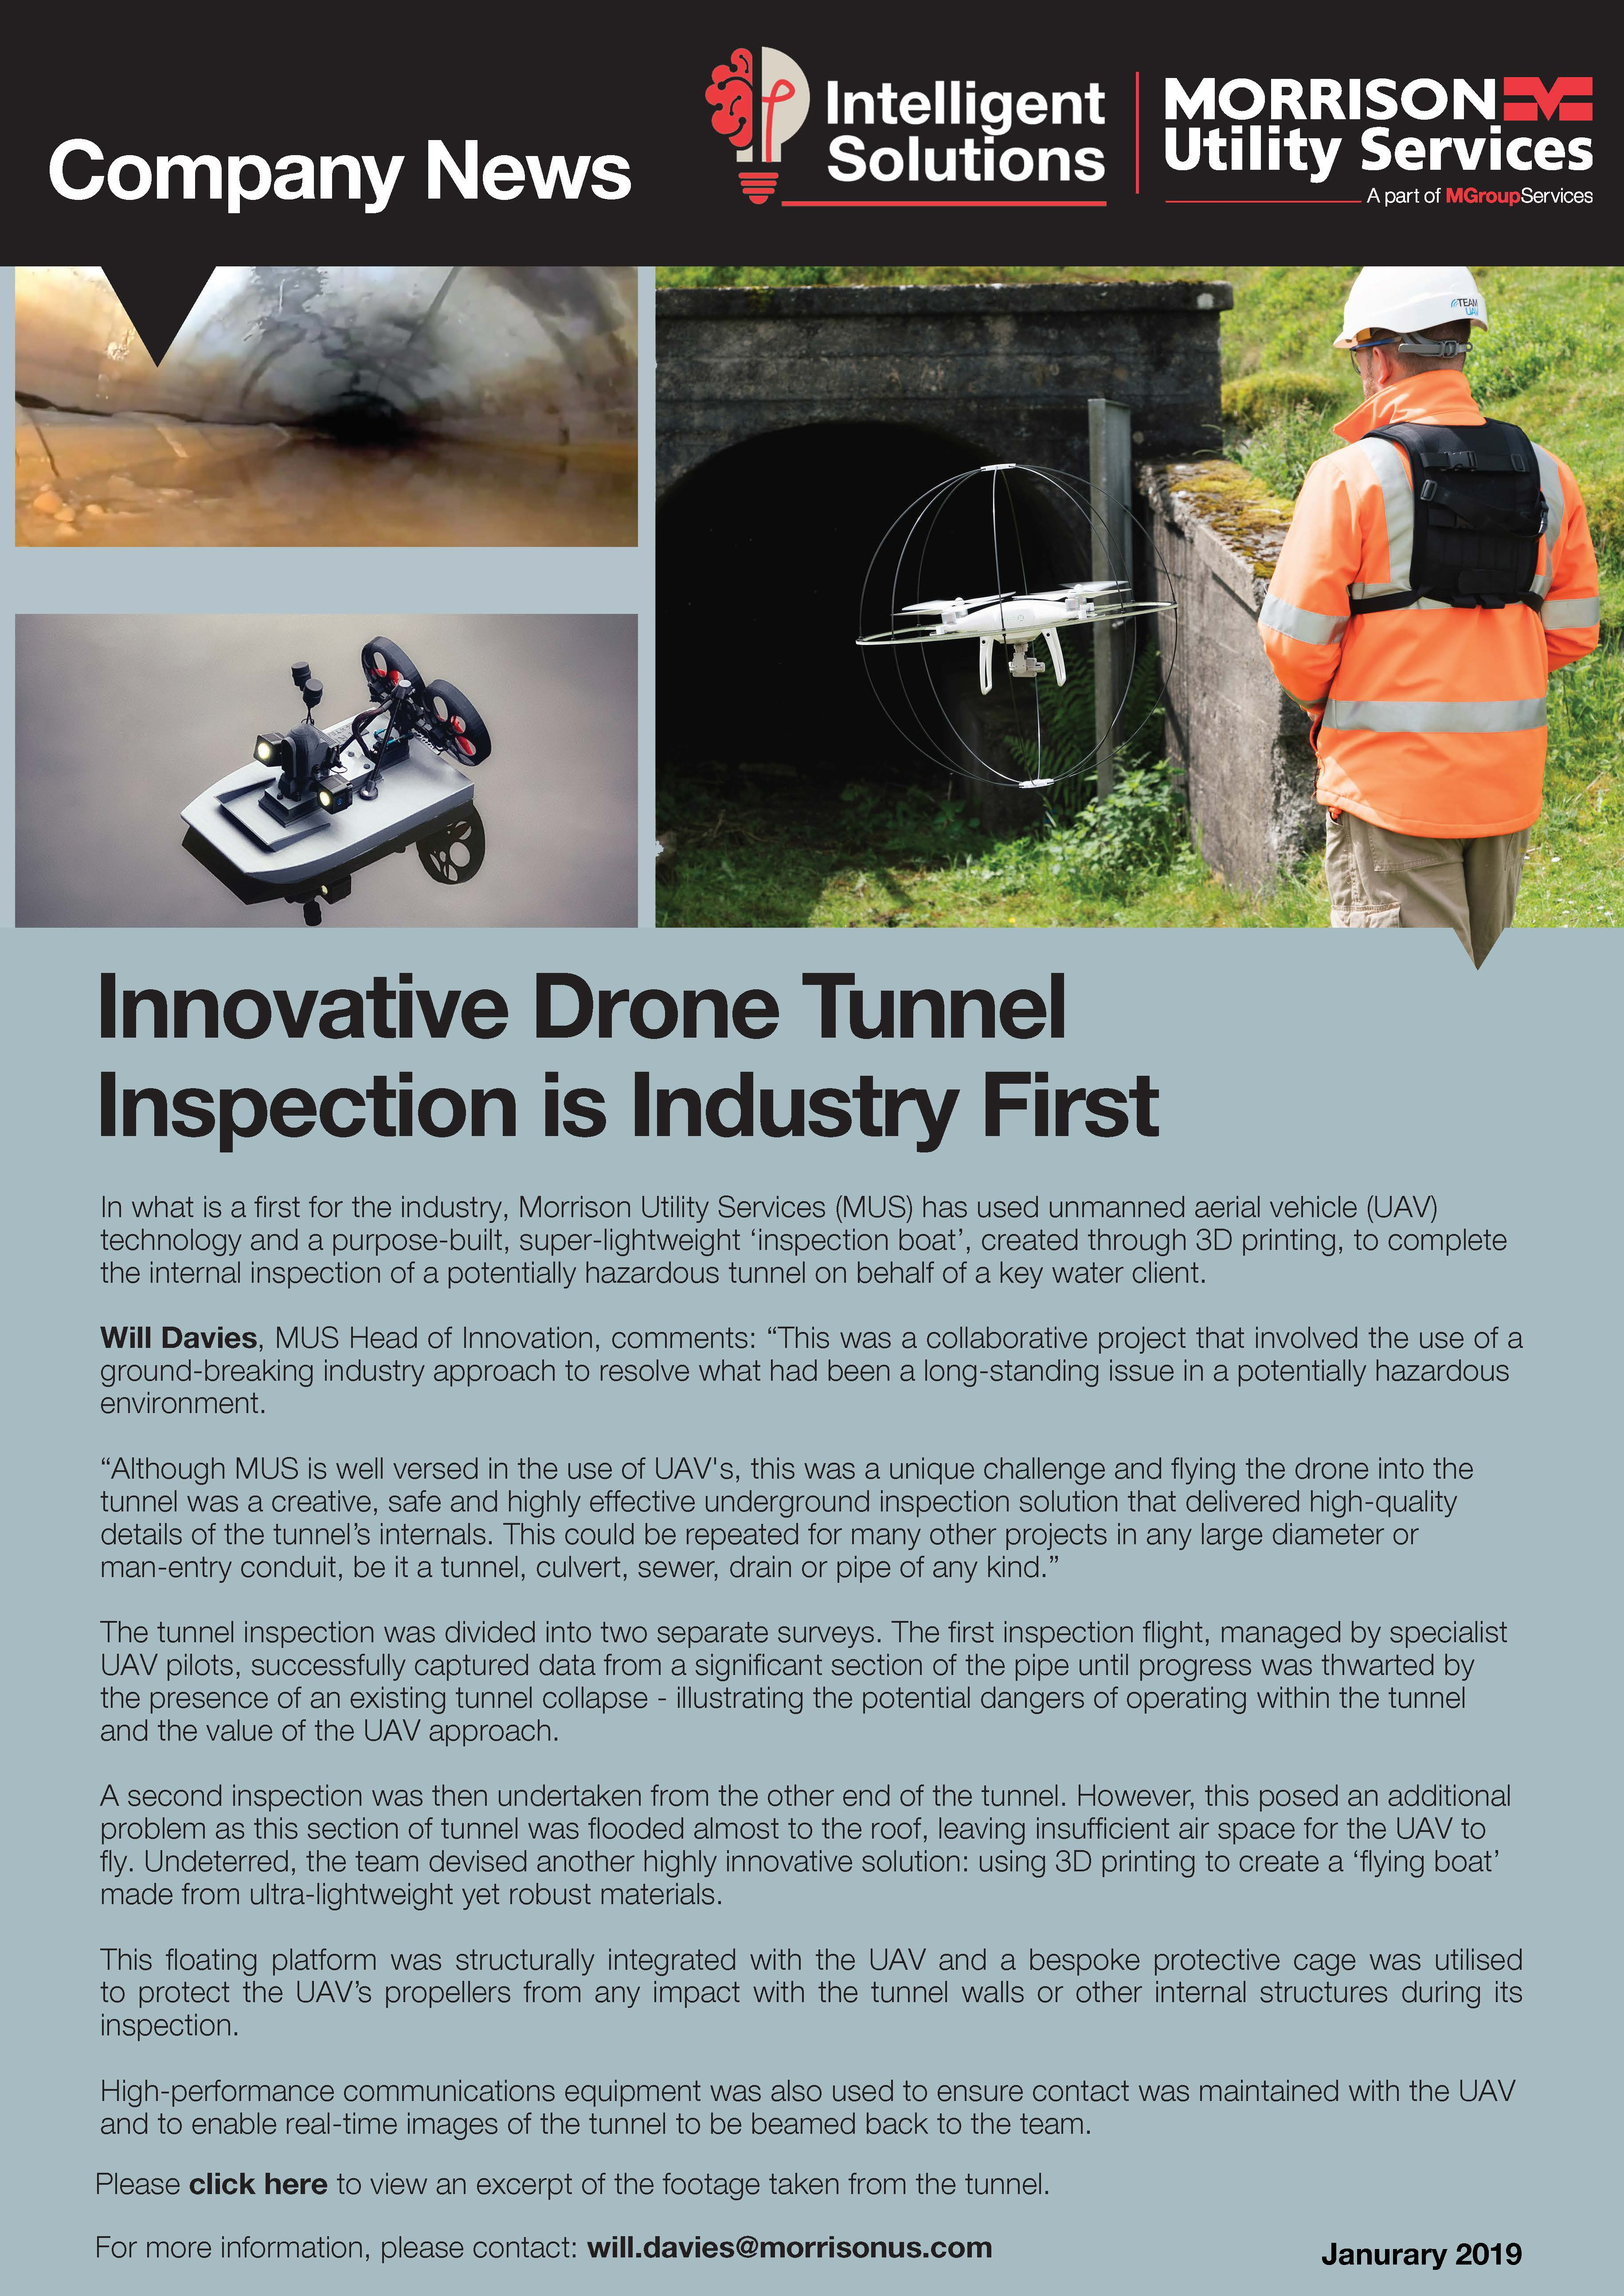 Innovative Drone Tunnel Inspection is Industry First